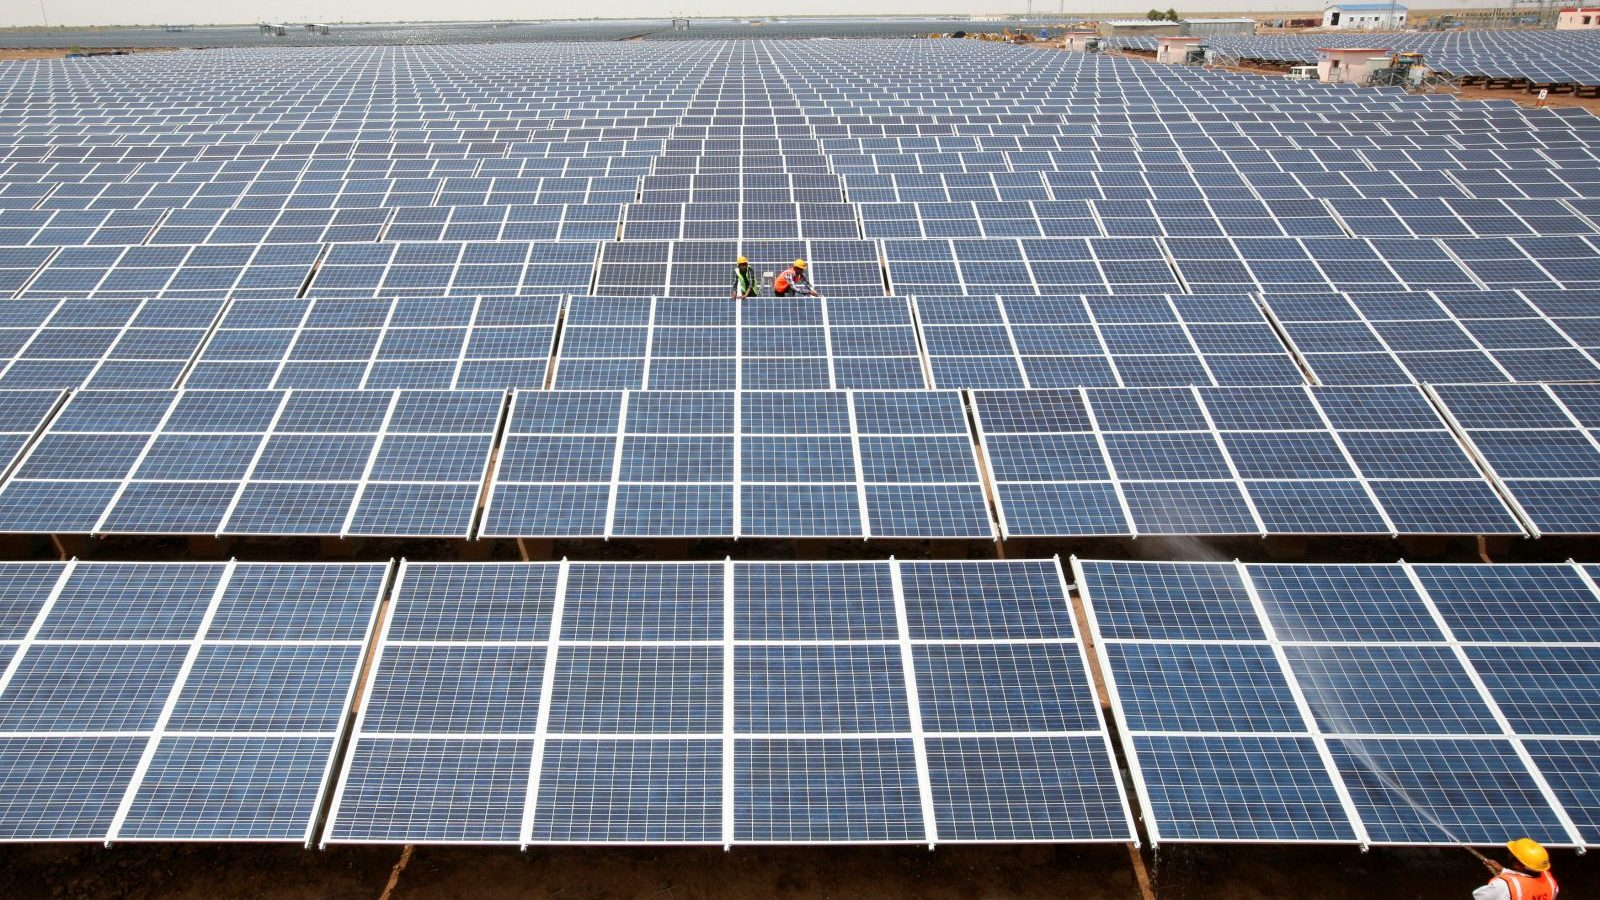 FILE PHOTO: Workers install photovoltaic solar panels at the Gujarat solar park under construction in Charanka village, in Patan district of the western Indian state of Gujarat, India, April 14, 2012. REUTERS/Amit Dave/File photo - RC1183C92C60